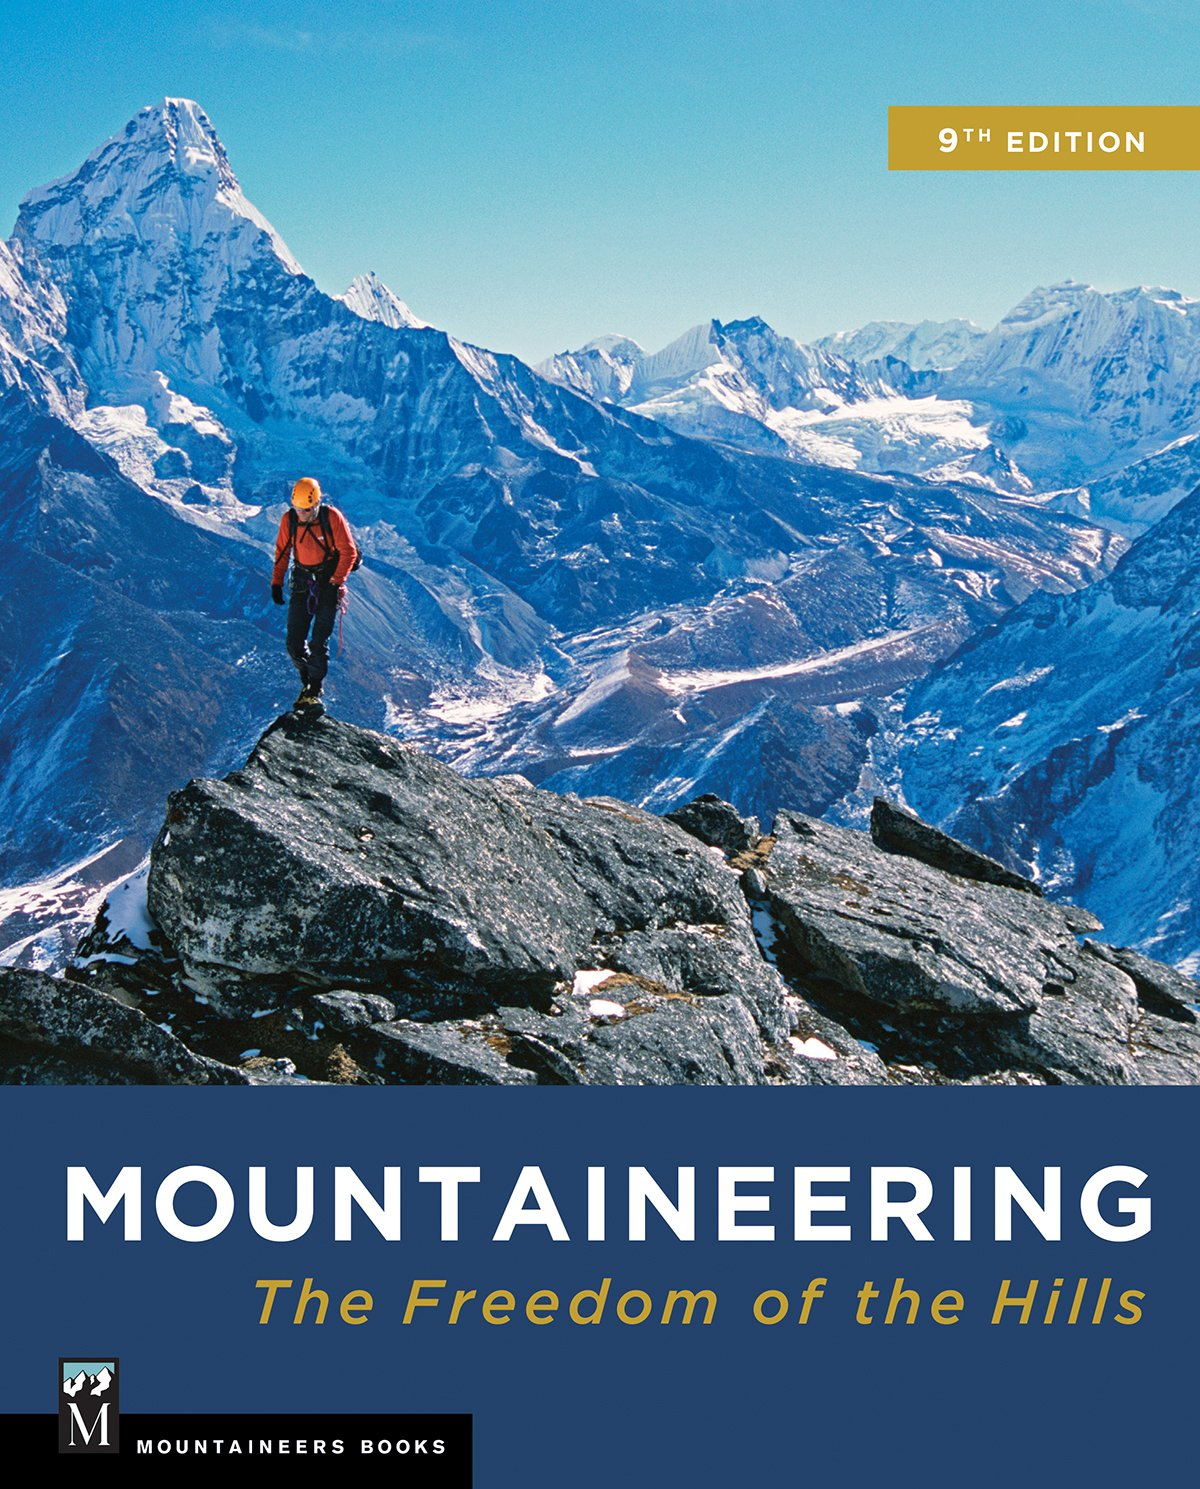 Mountaineering: The Freedom of the Hills by Brand: Mountaineers Books